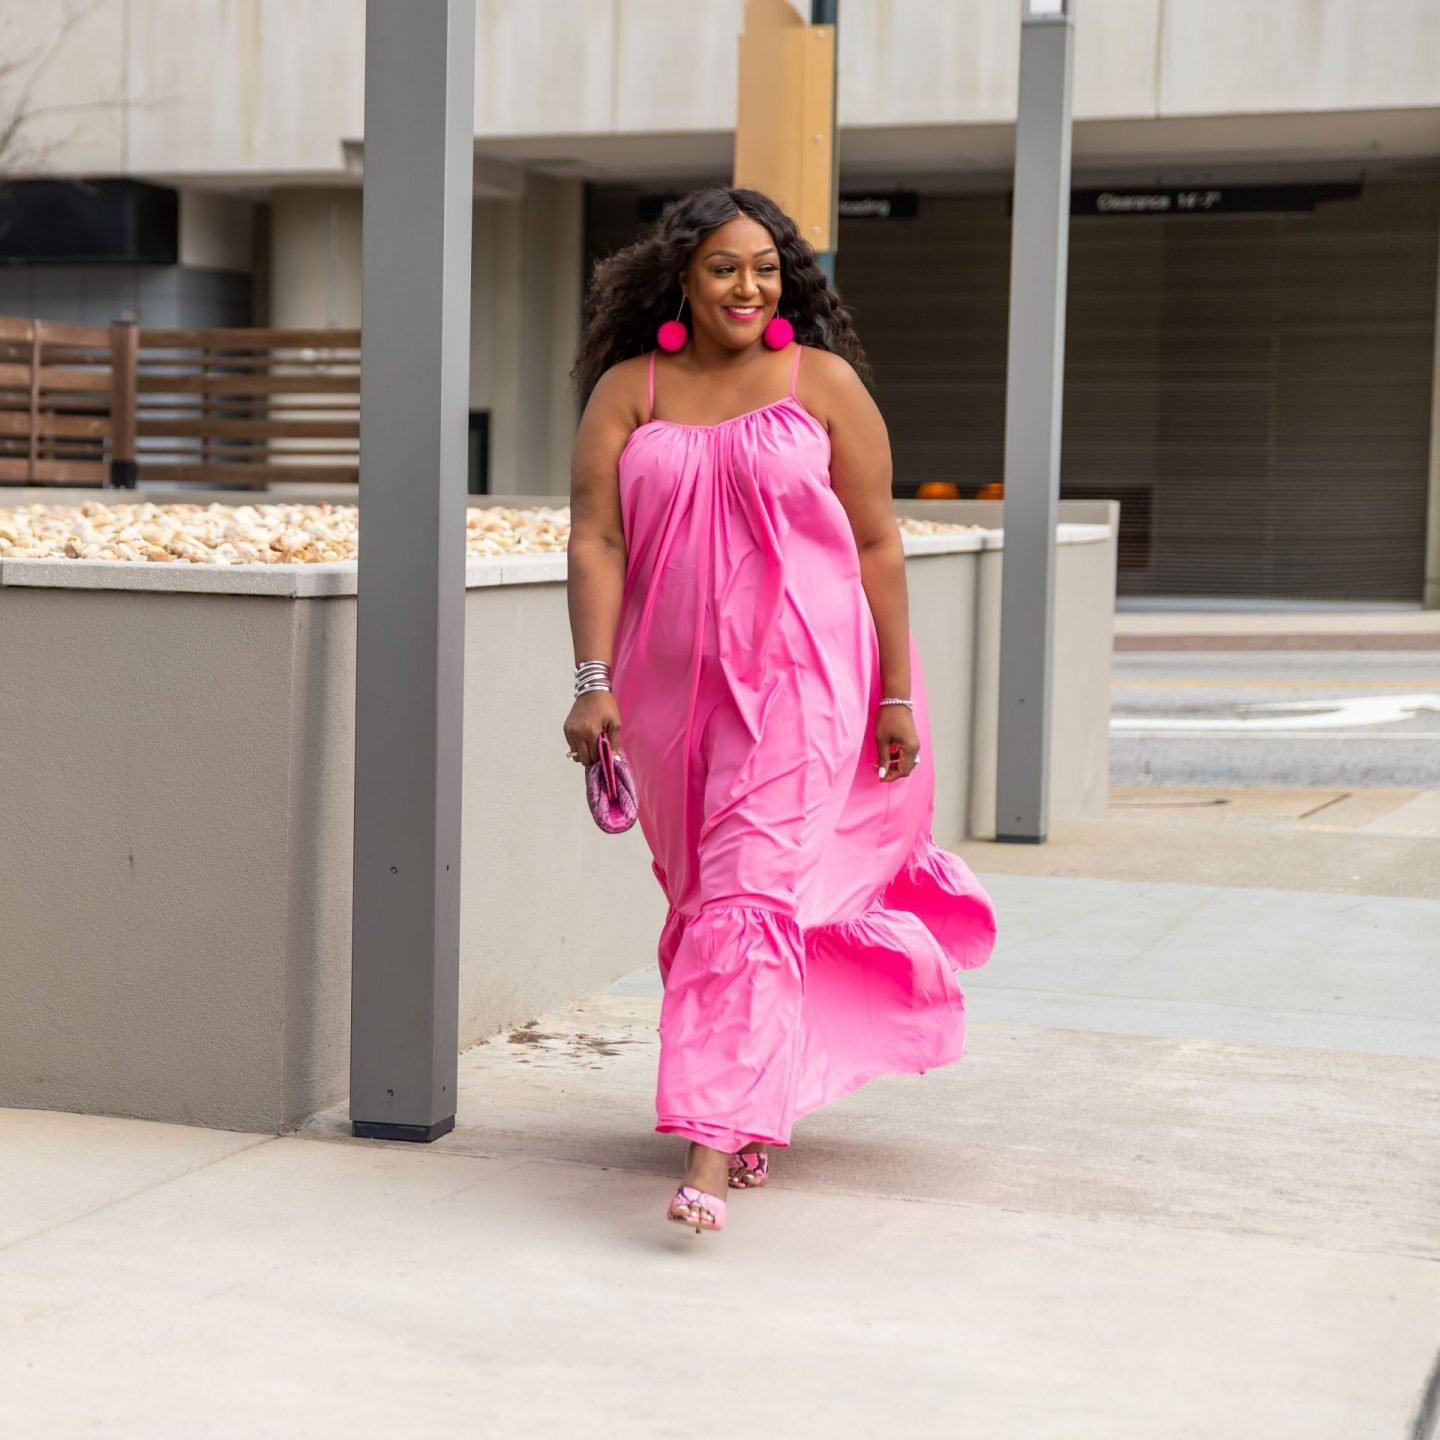 Blogger Nikki Free walking in flowing pink maxi sundress